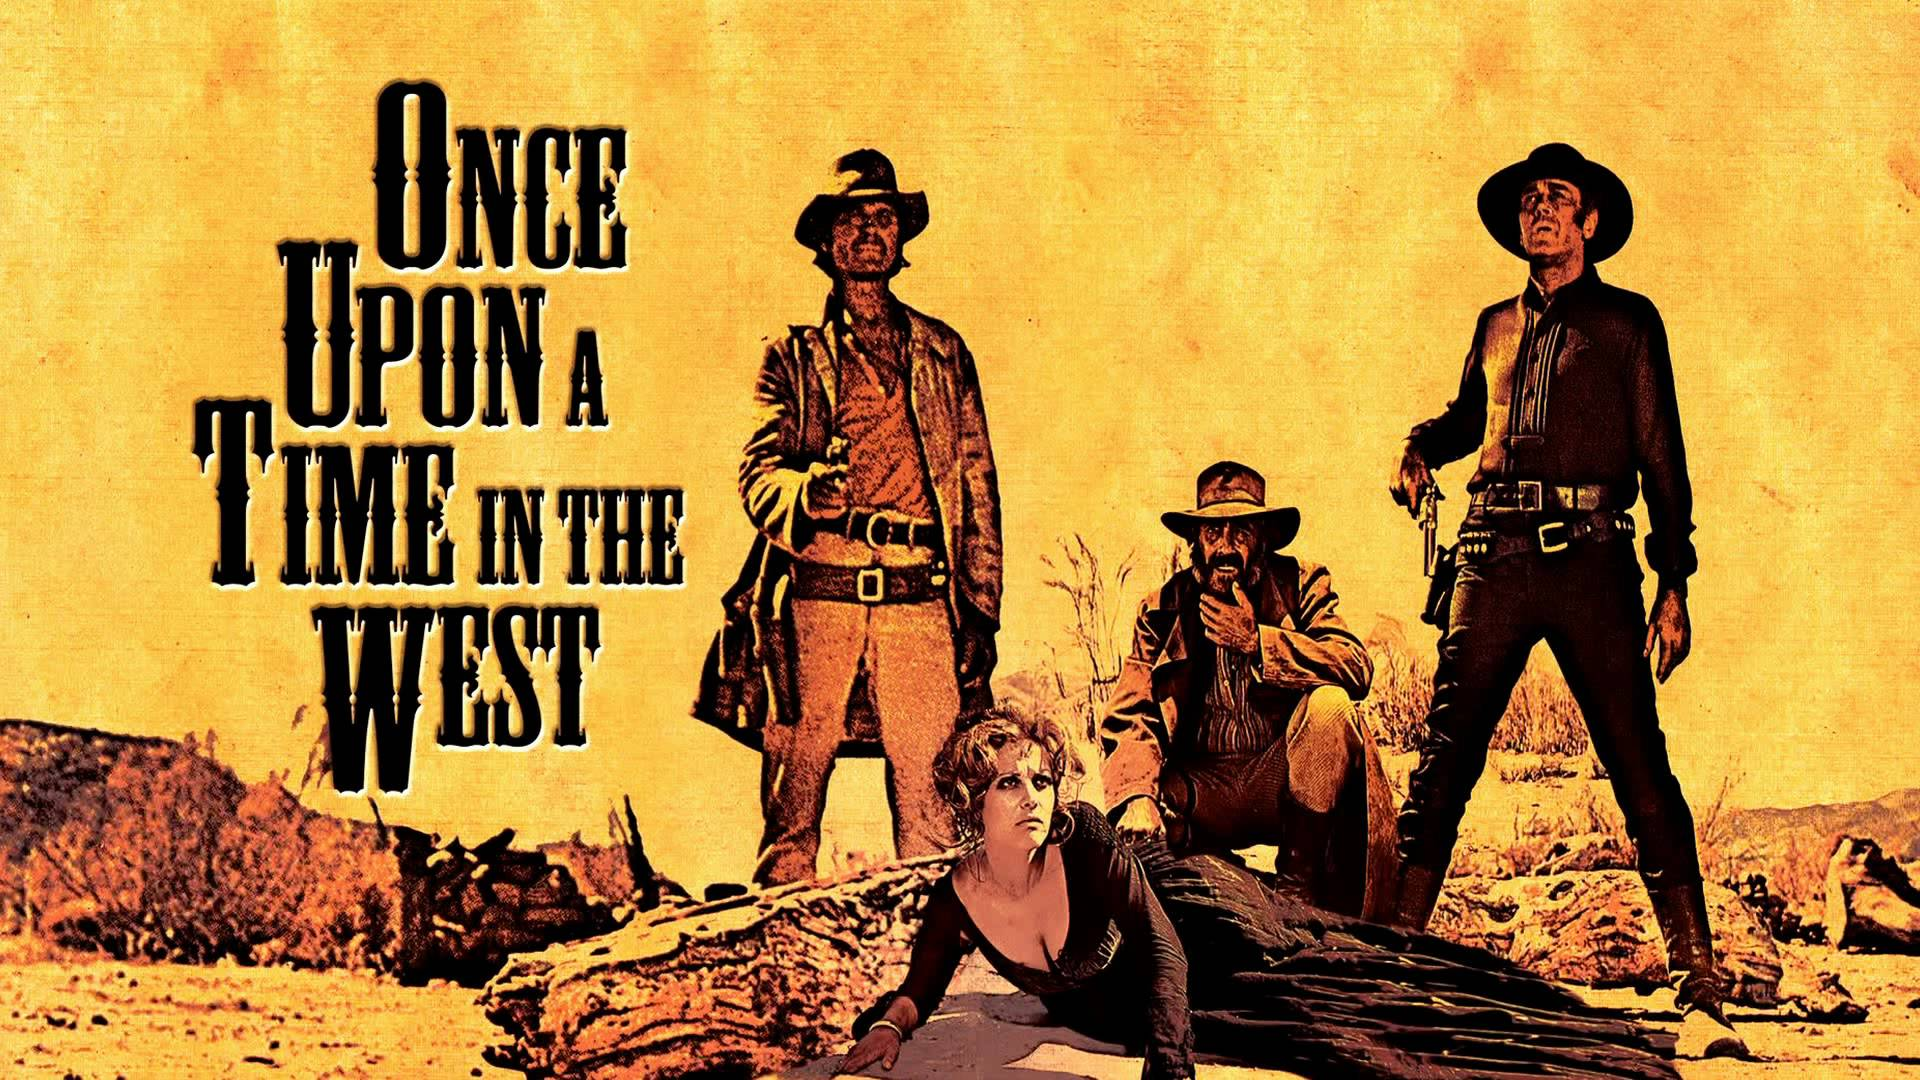 once upon a time in the west wallpapers